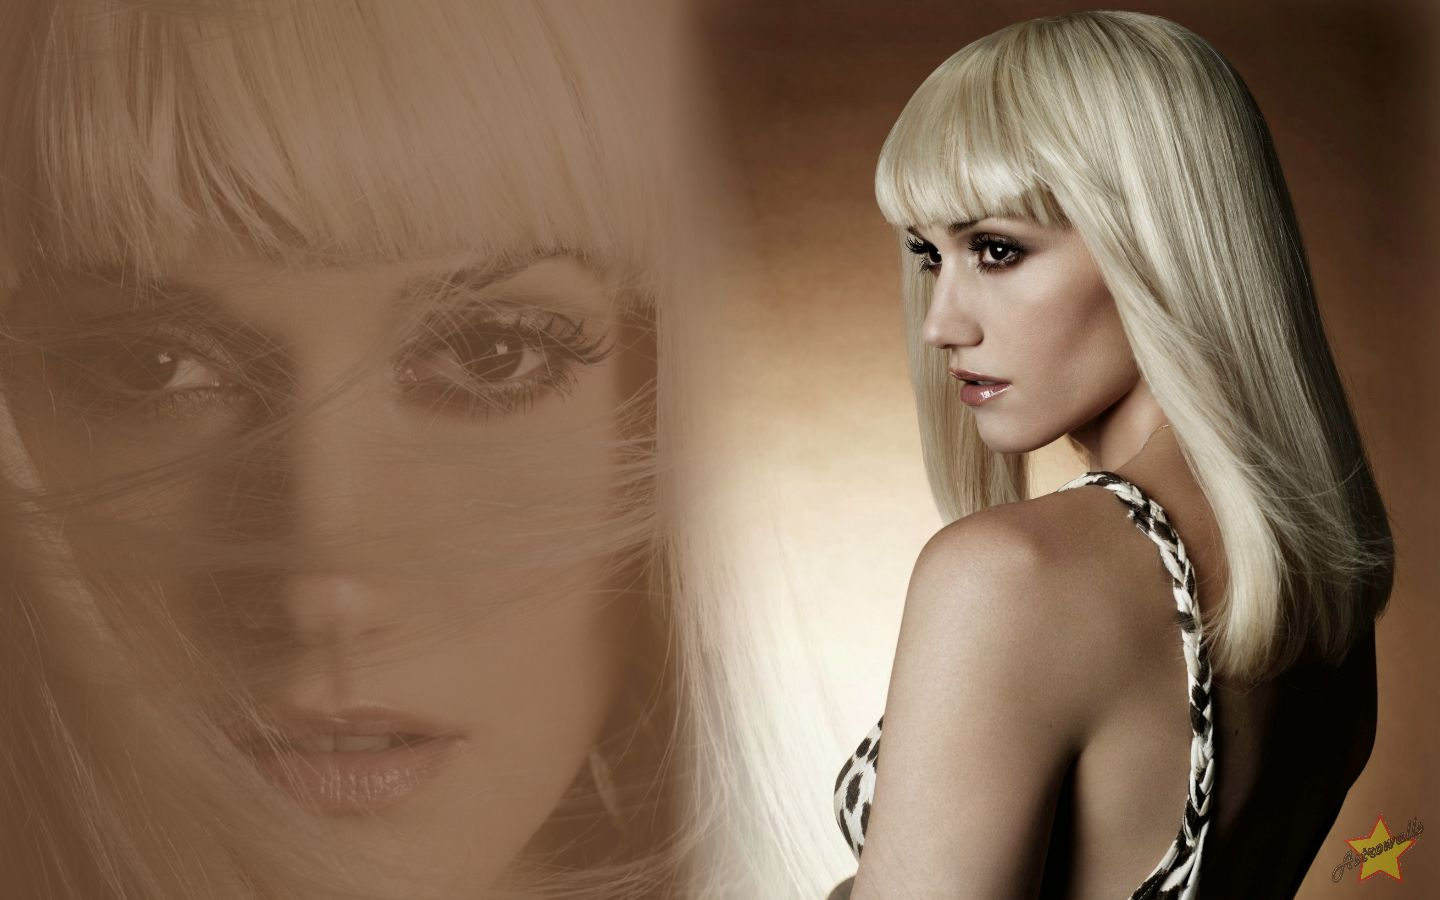 gwen stefani wallpaper cool - photo #24